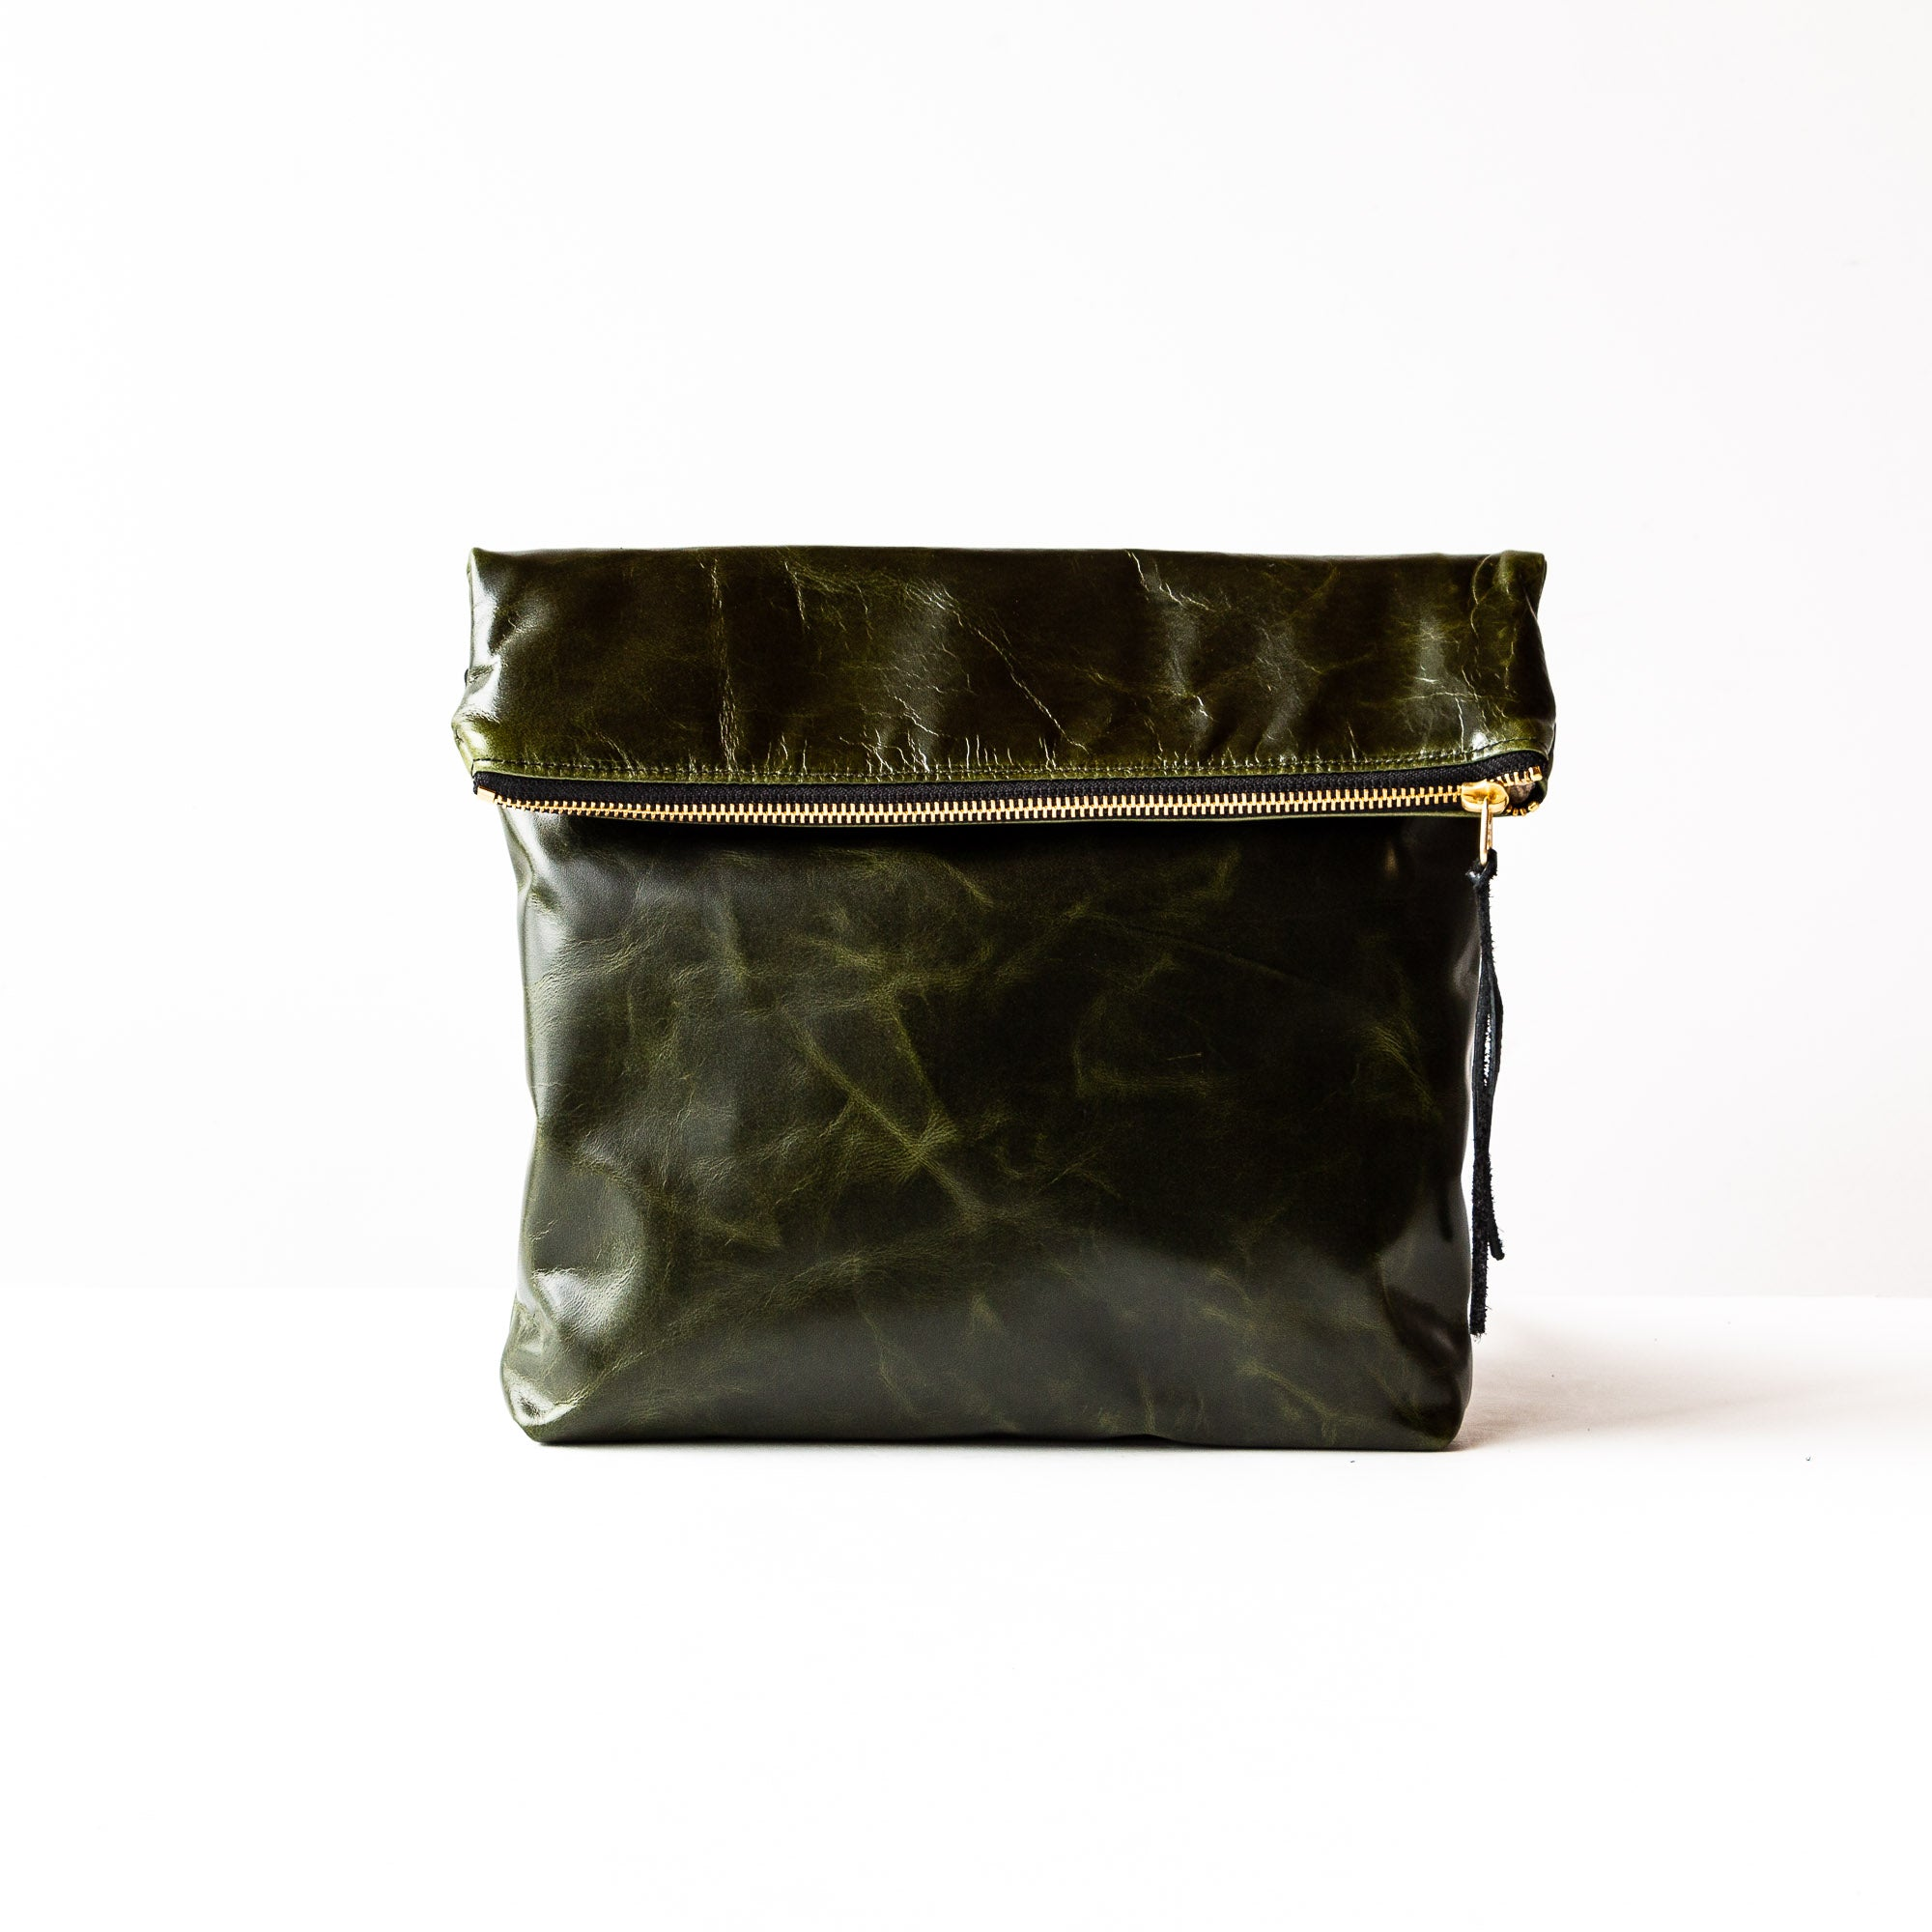 Bordeaux - Medium Leather Clutch Bag - Cross Body Strap Bag in Forest Green